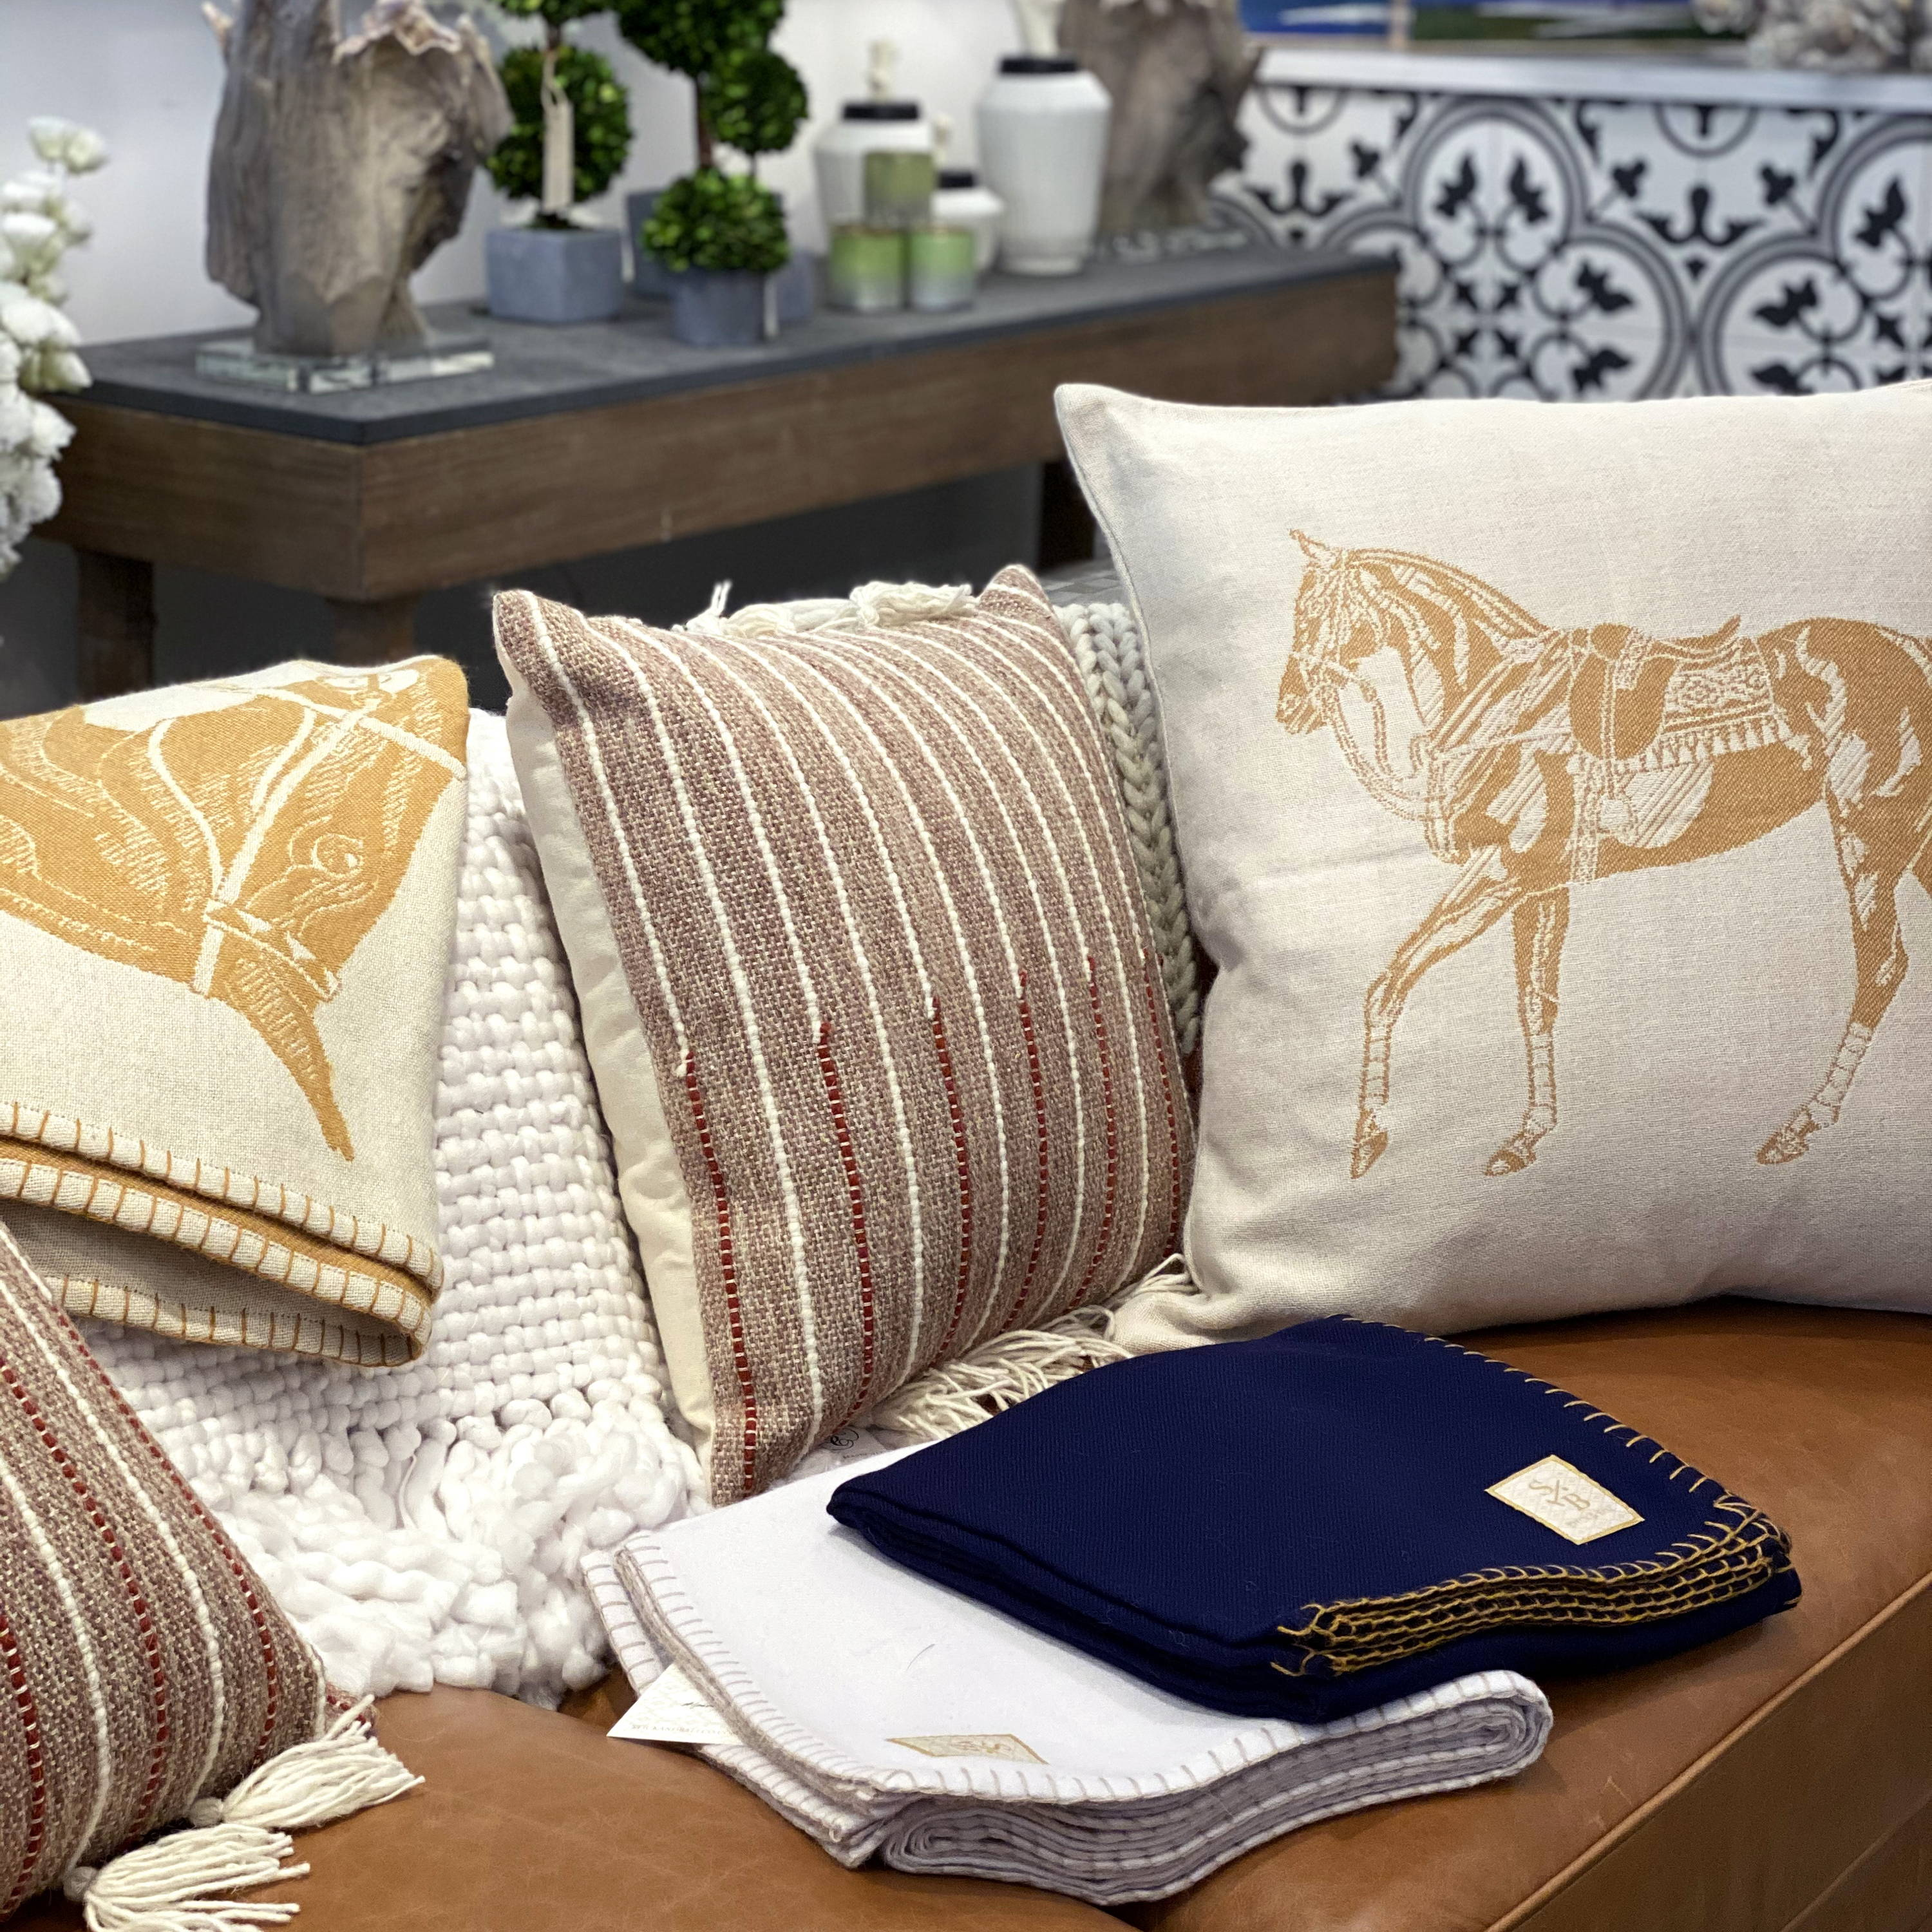 Display of sustainable alpaca home decor - Polo Pony pillow & throw blankets - Stick & Ball